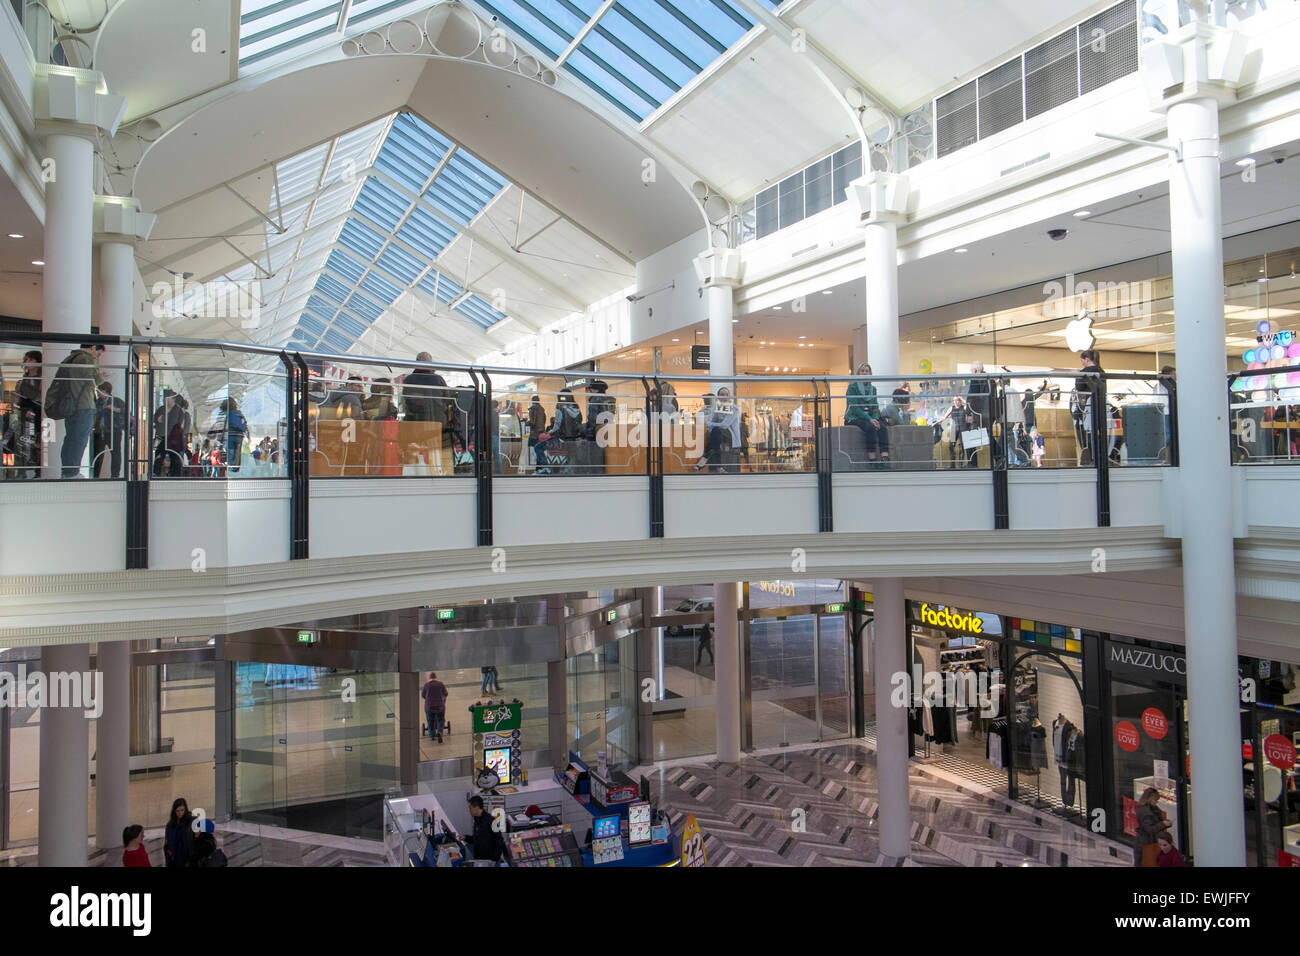 Canberra Centre, shopping mall centre in the australian capital city of Canberra,ACT,Australia - Stock Image